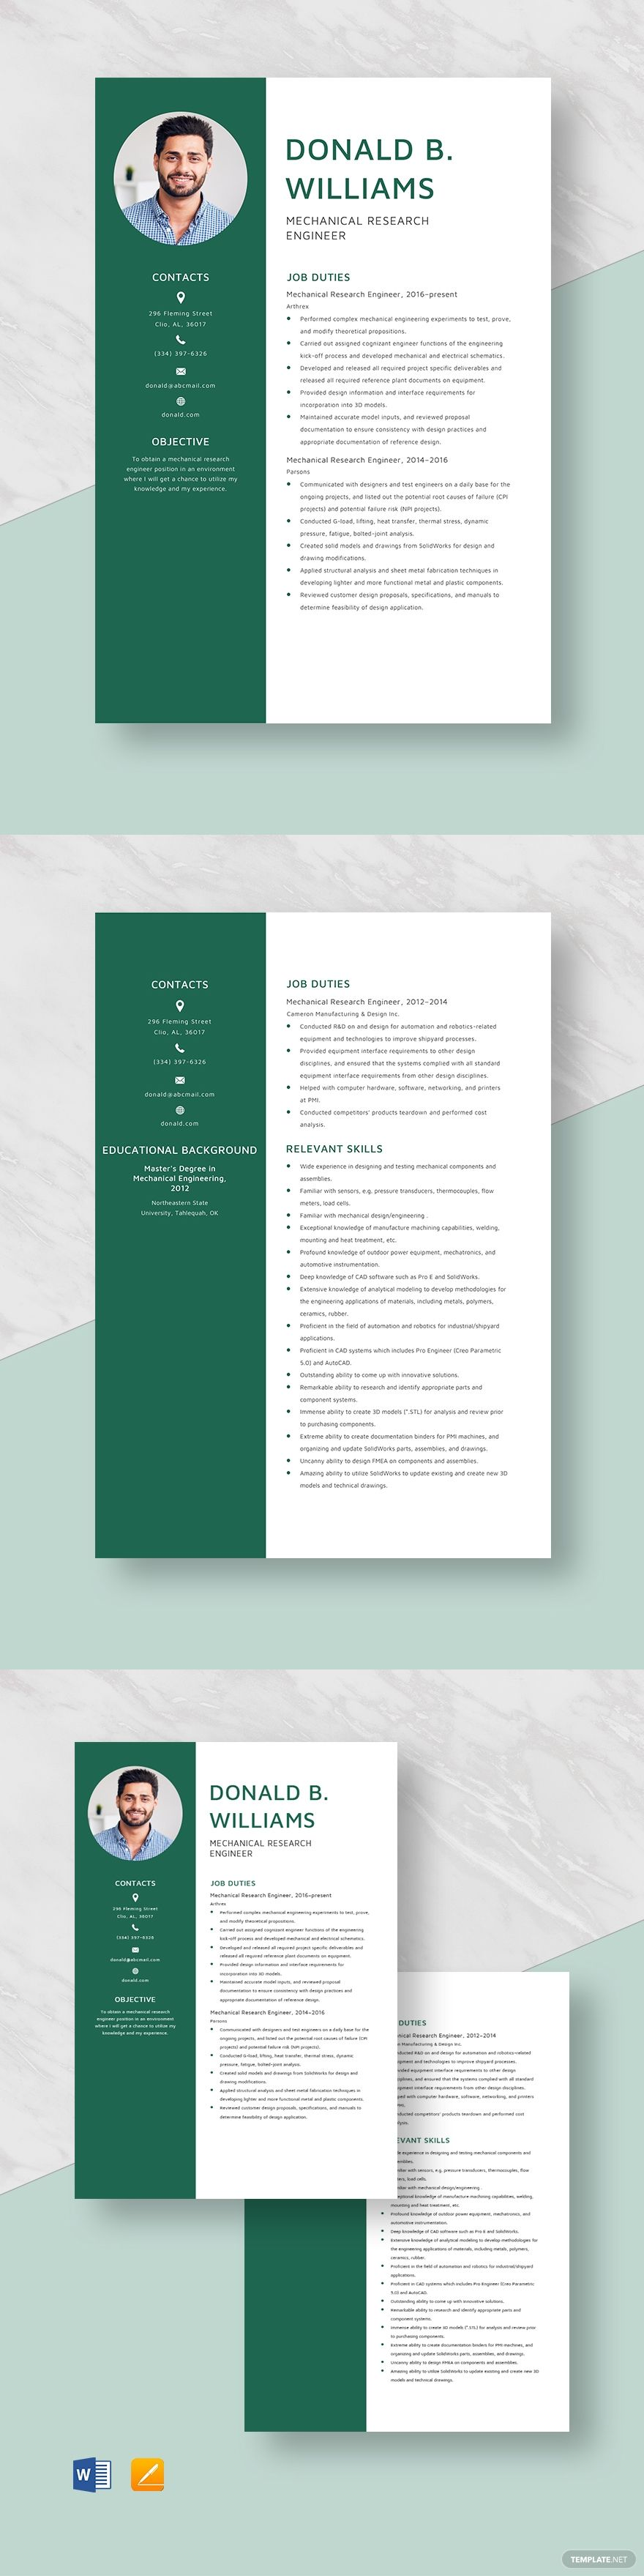 Mechanical research engineer resume template in 2020